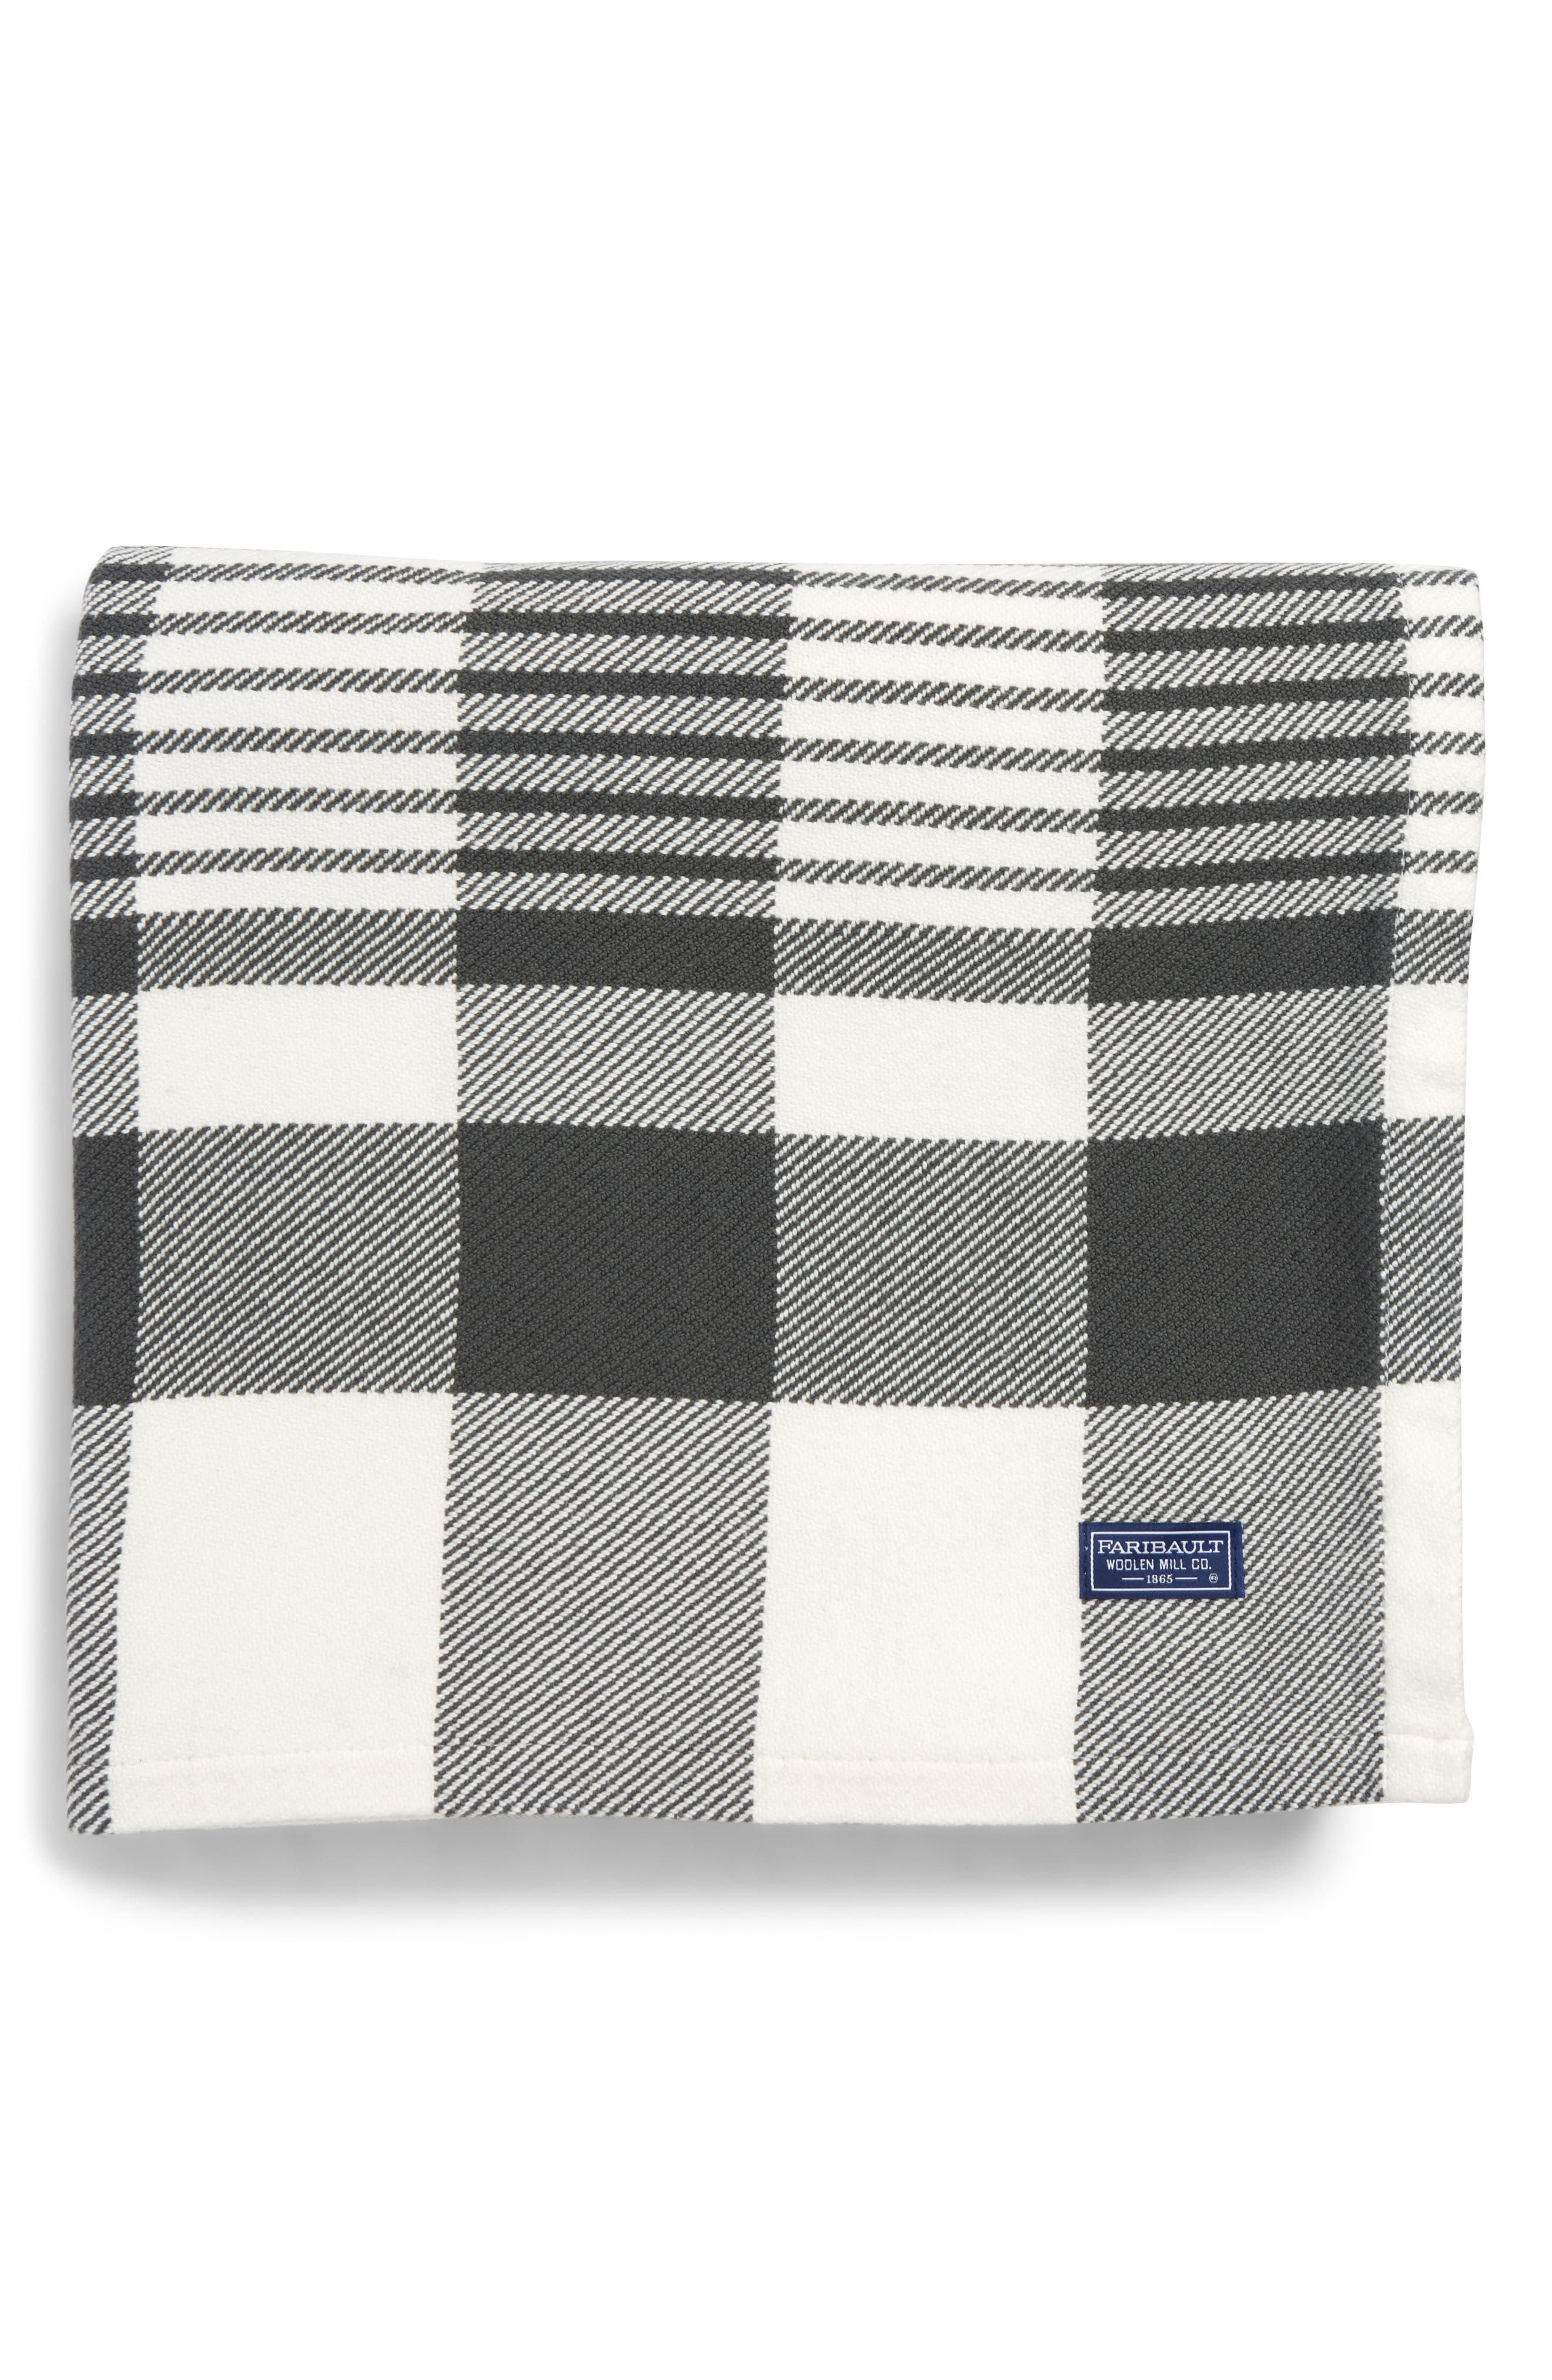 Plaid Throw Blanket,                             Main thumbnail 1, color,                             020